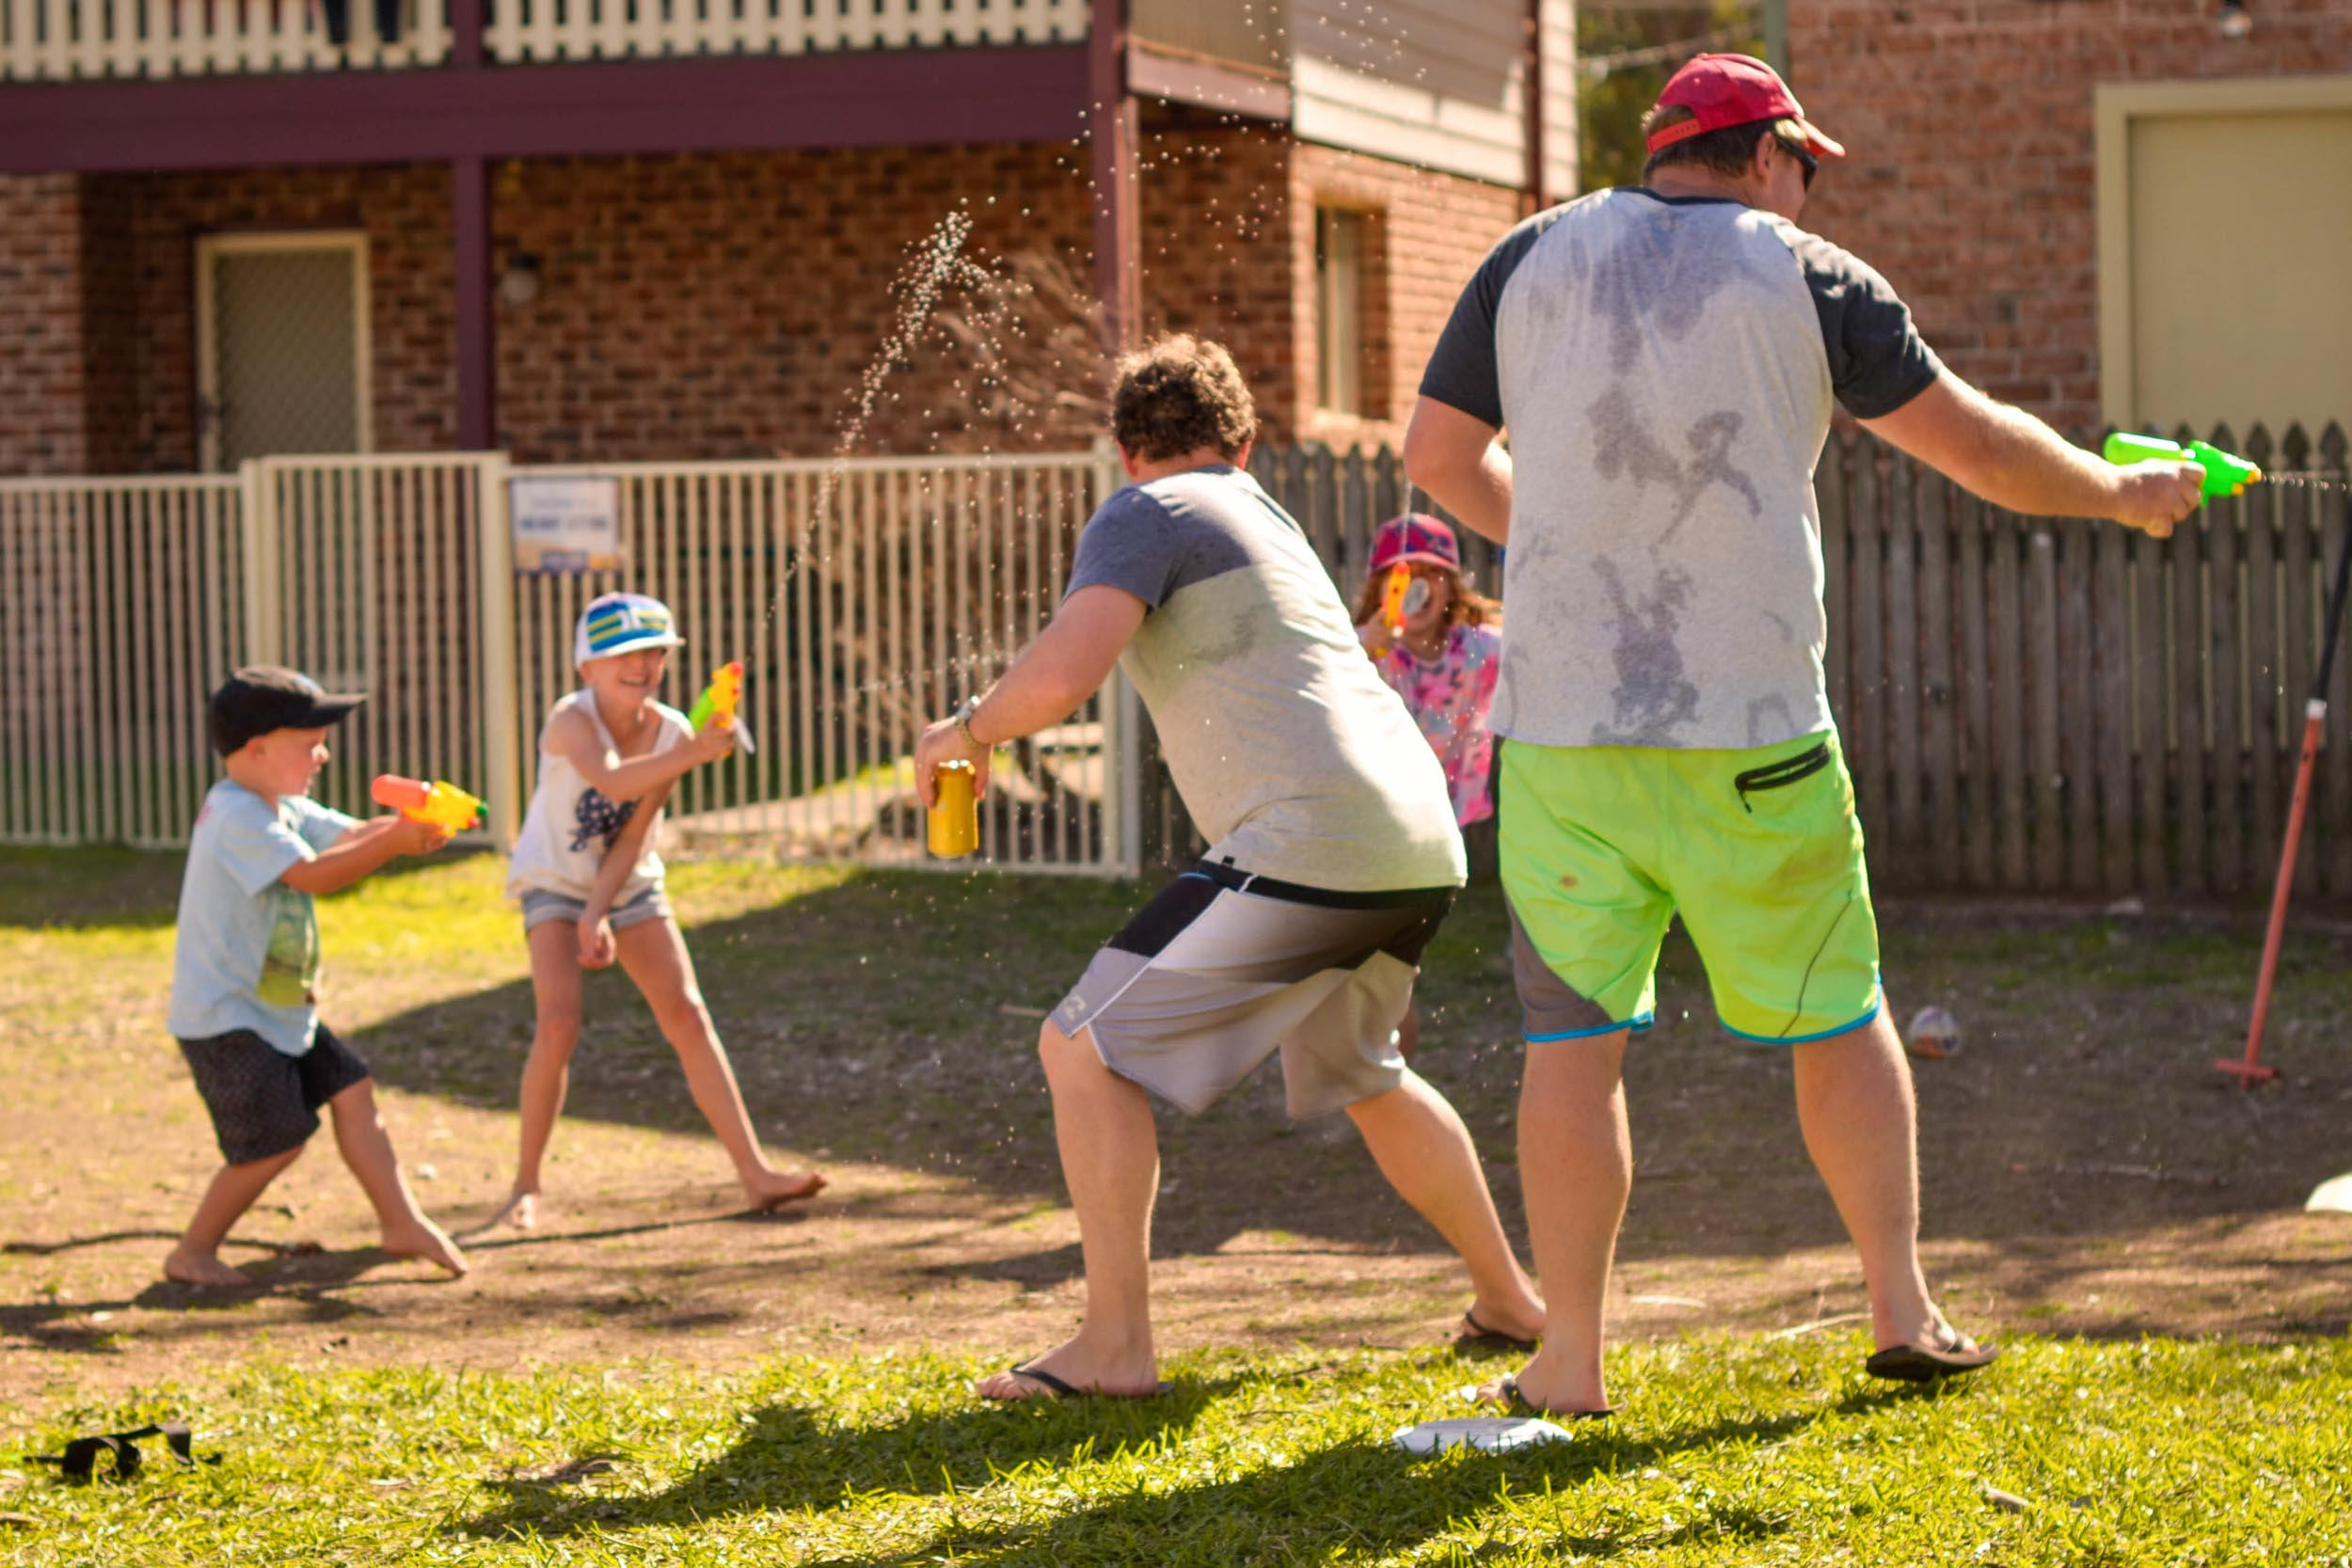 water fight with dad central coast photographer katy allen photograohy-0337.jpg